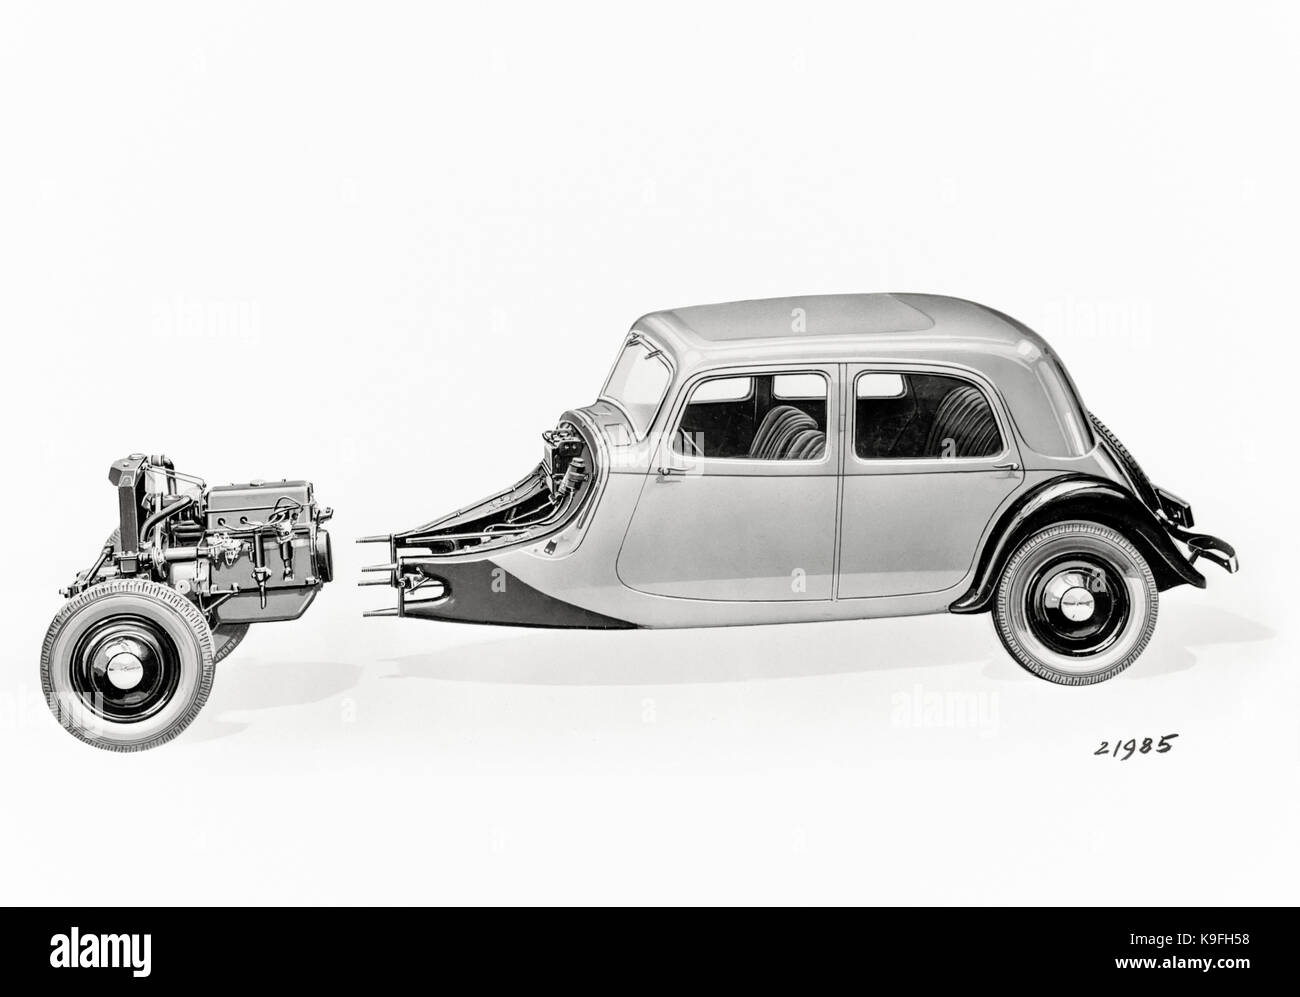 Citroën Traction Avant manufactured between 1934 and 1957. Illustration showing its main innovative features, - Stock Image